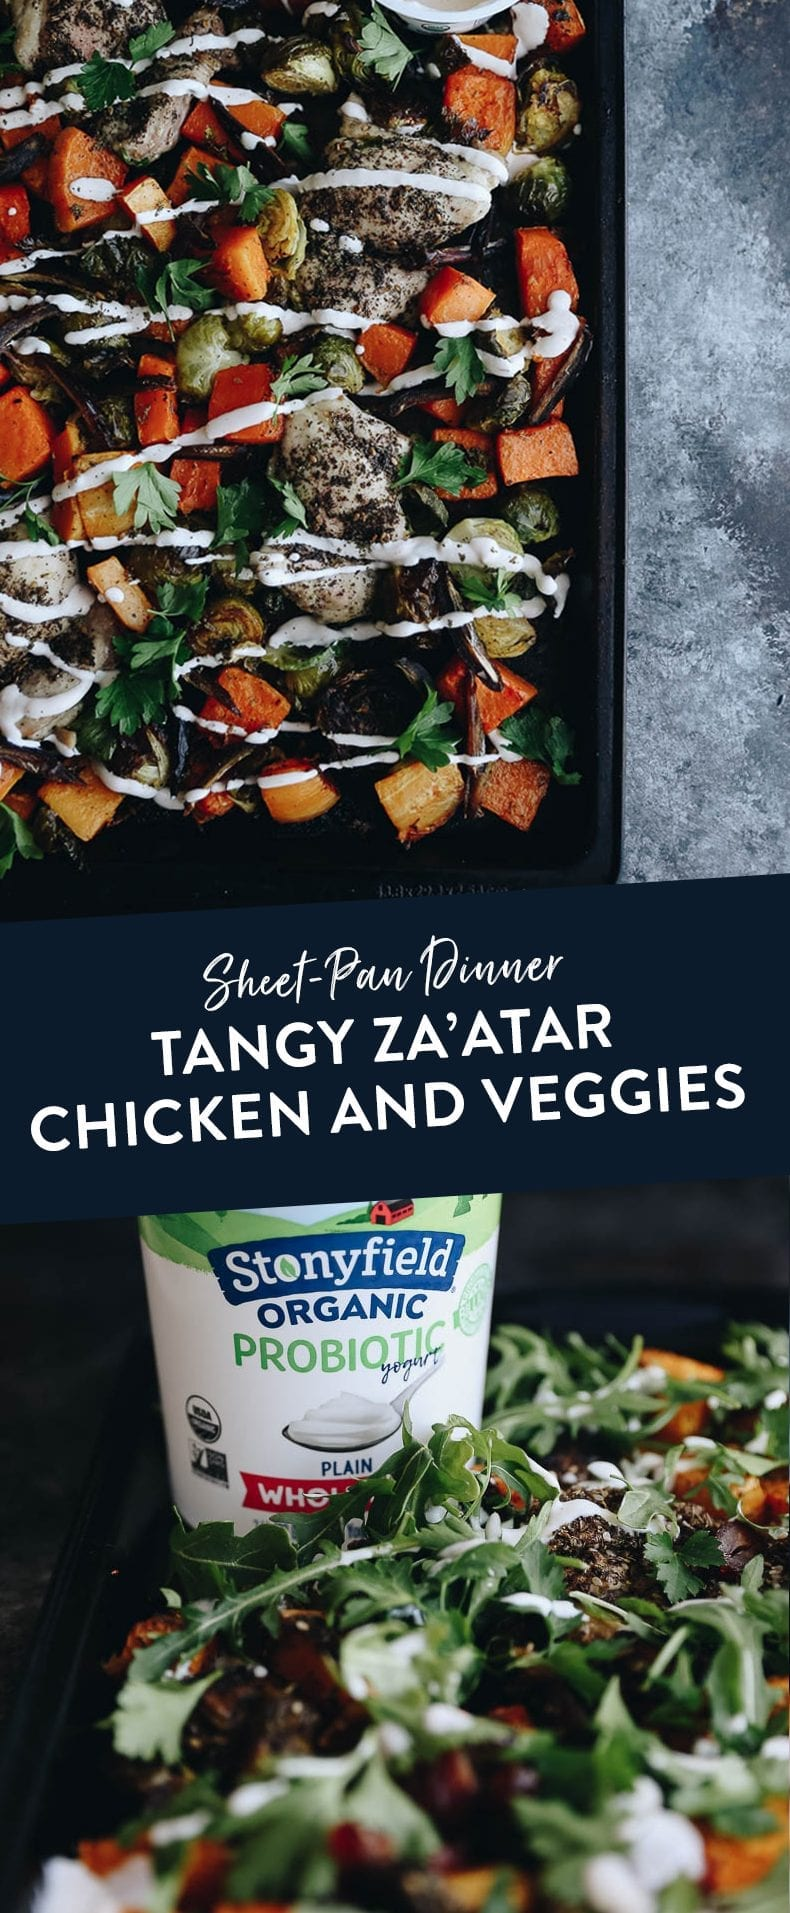 Cook your entire meal in one go with this sheet-pan dinner for Tangy Za'atar Chicken and Veggies. An easy take on a classic Mediterranean dish your whole family will enjoy #sheetpan #dinner #zaatar